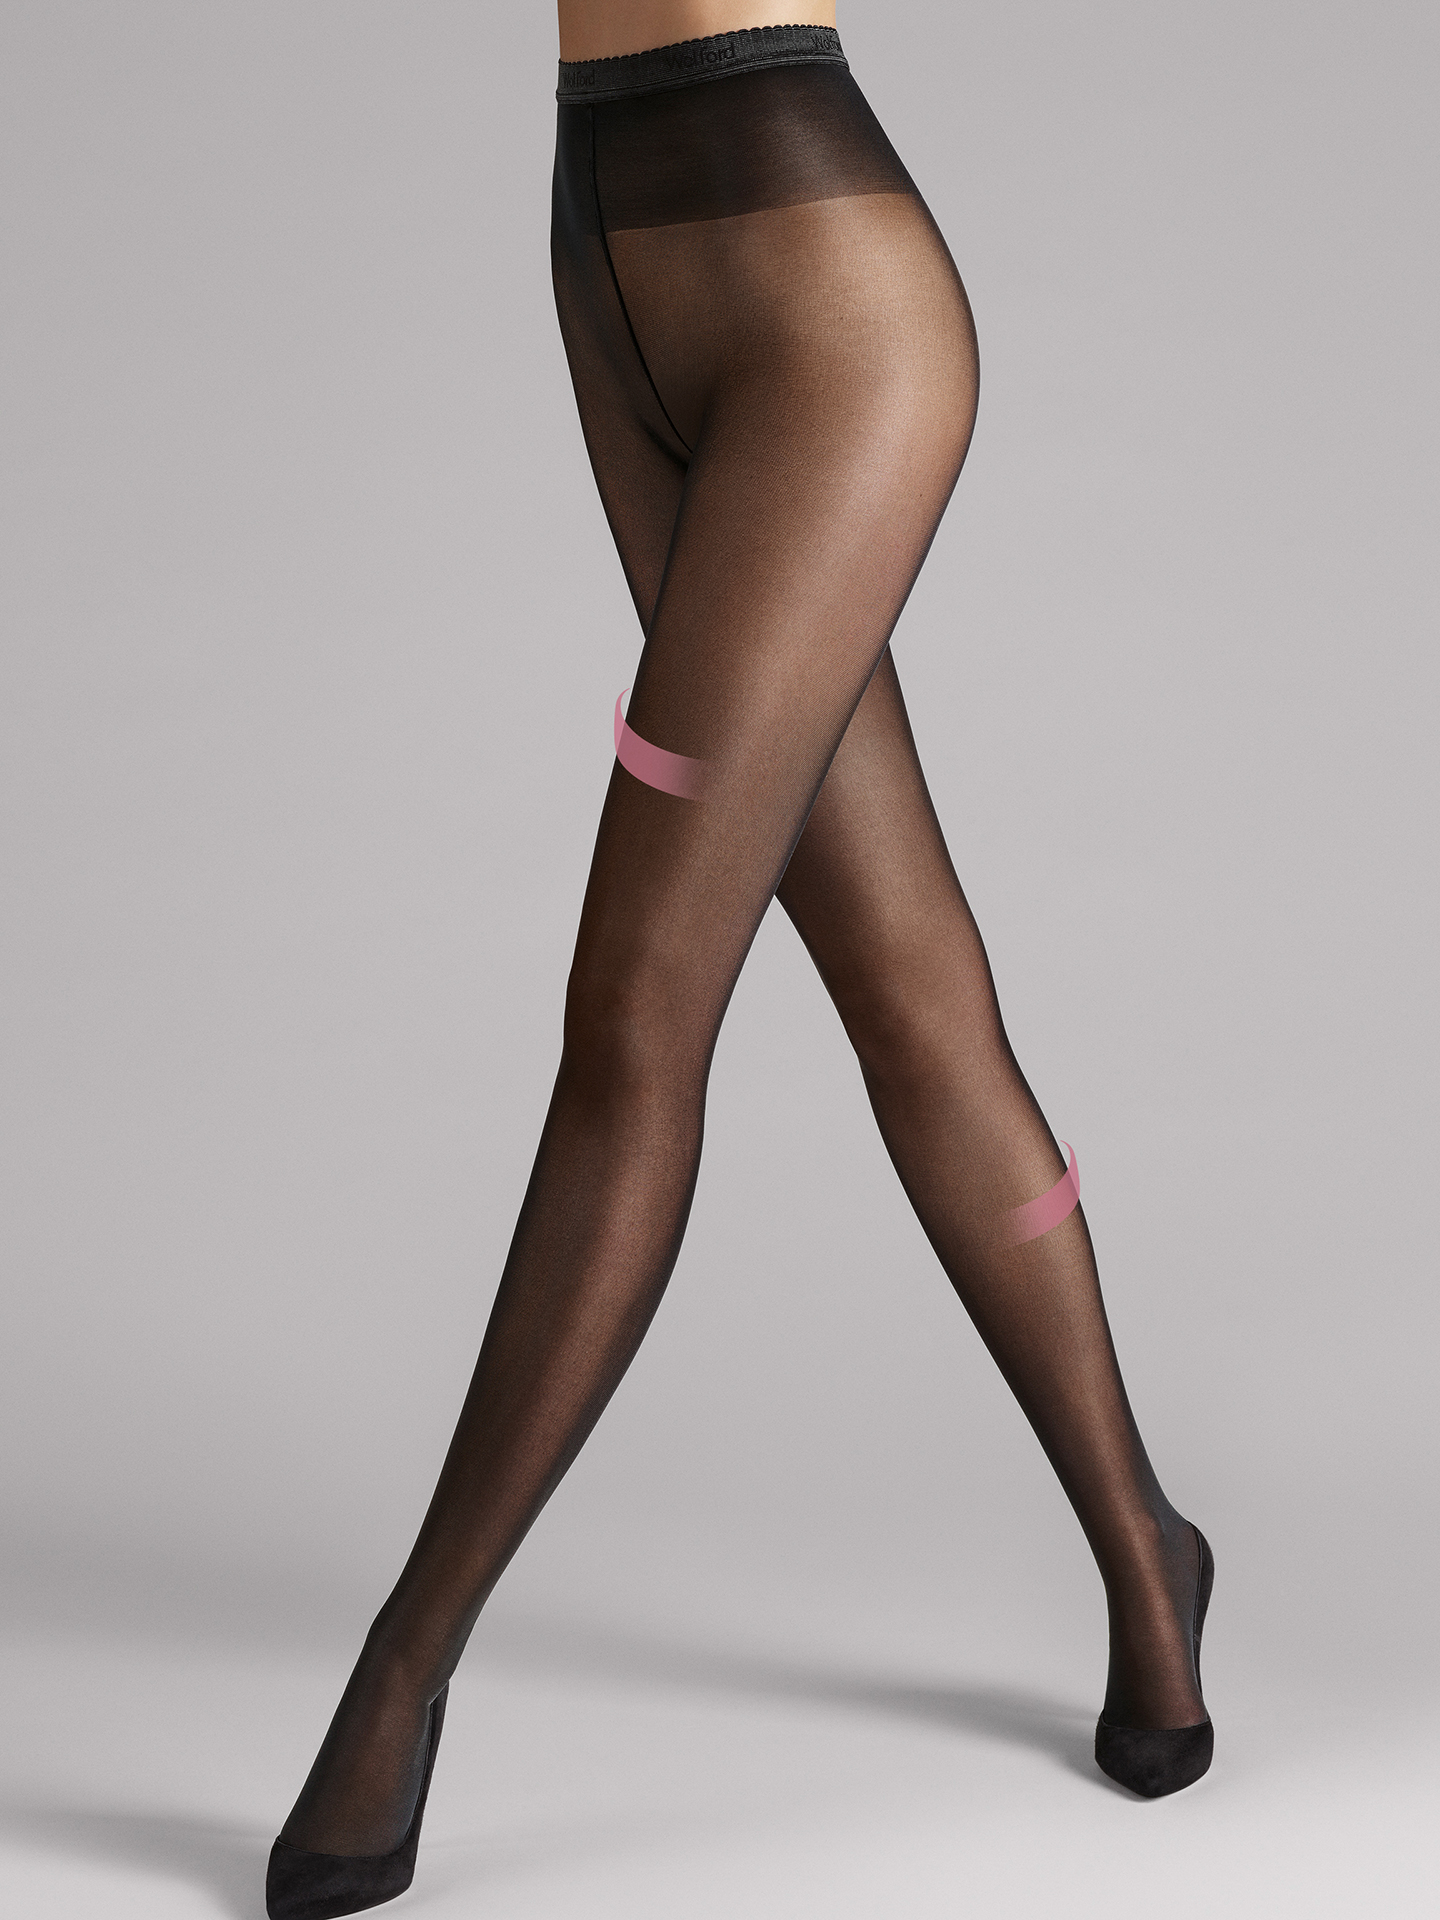 Wolford Apparel & Accessories > Clothing > Collant Synergy 40 leg support - 7005 - XS